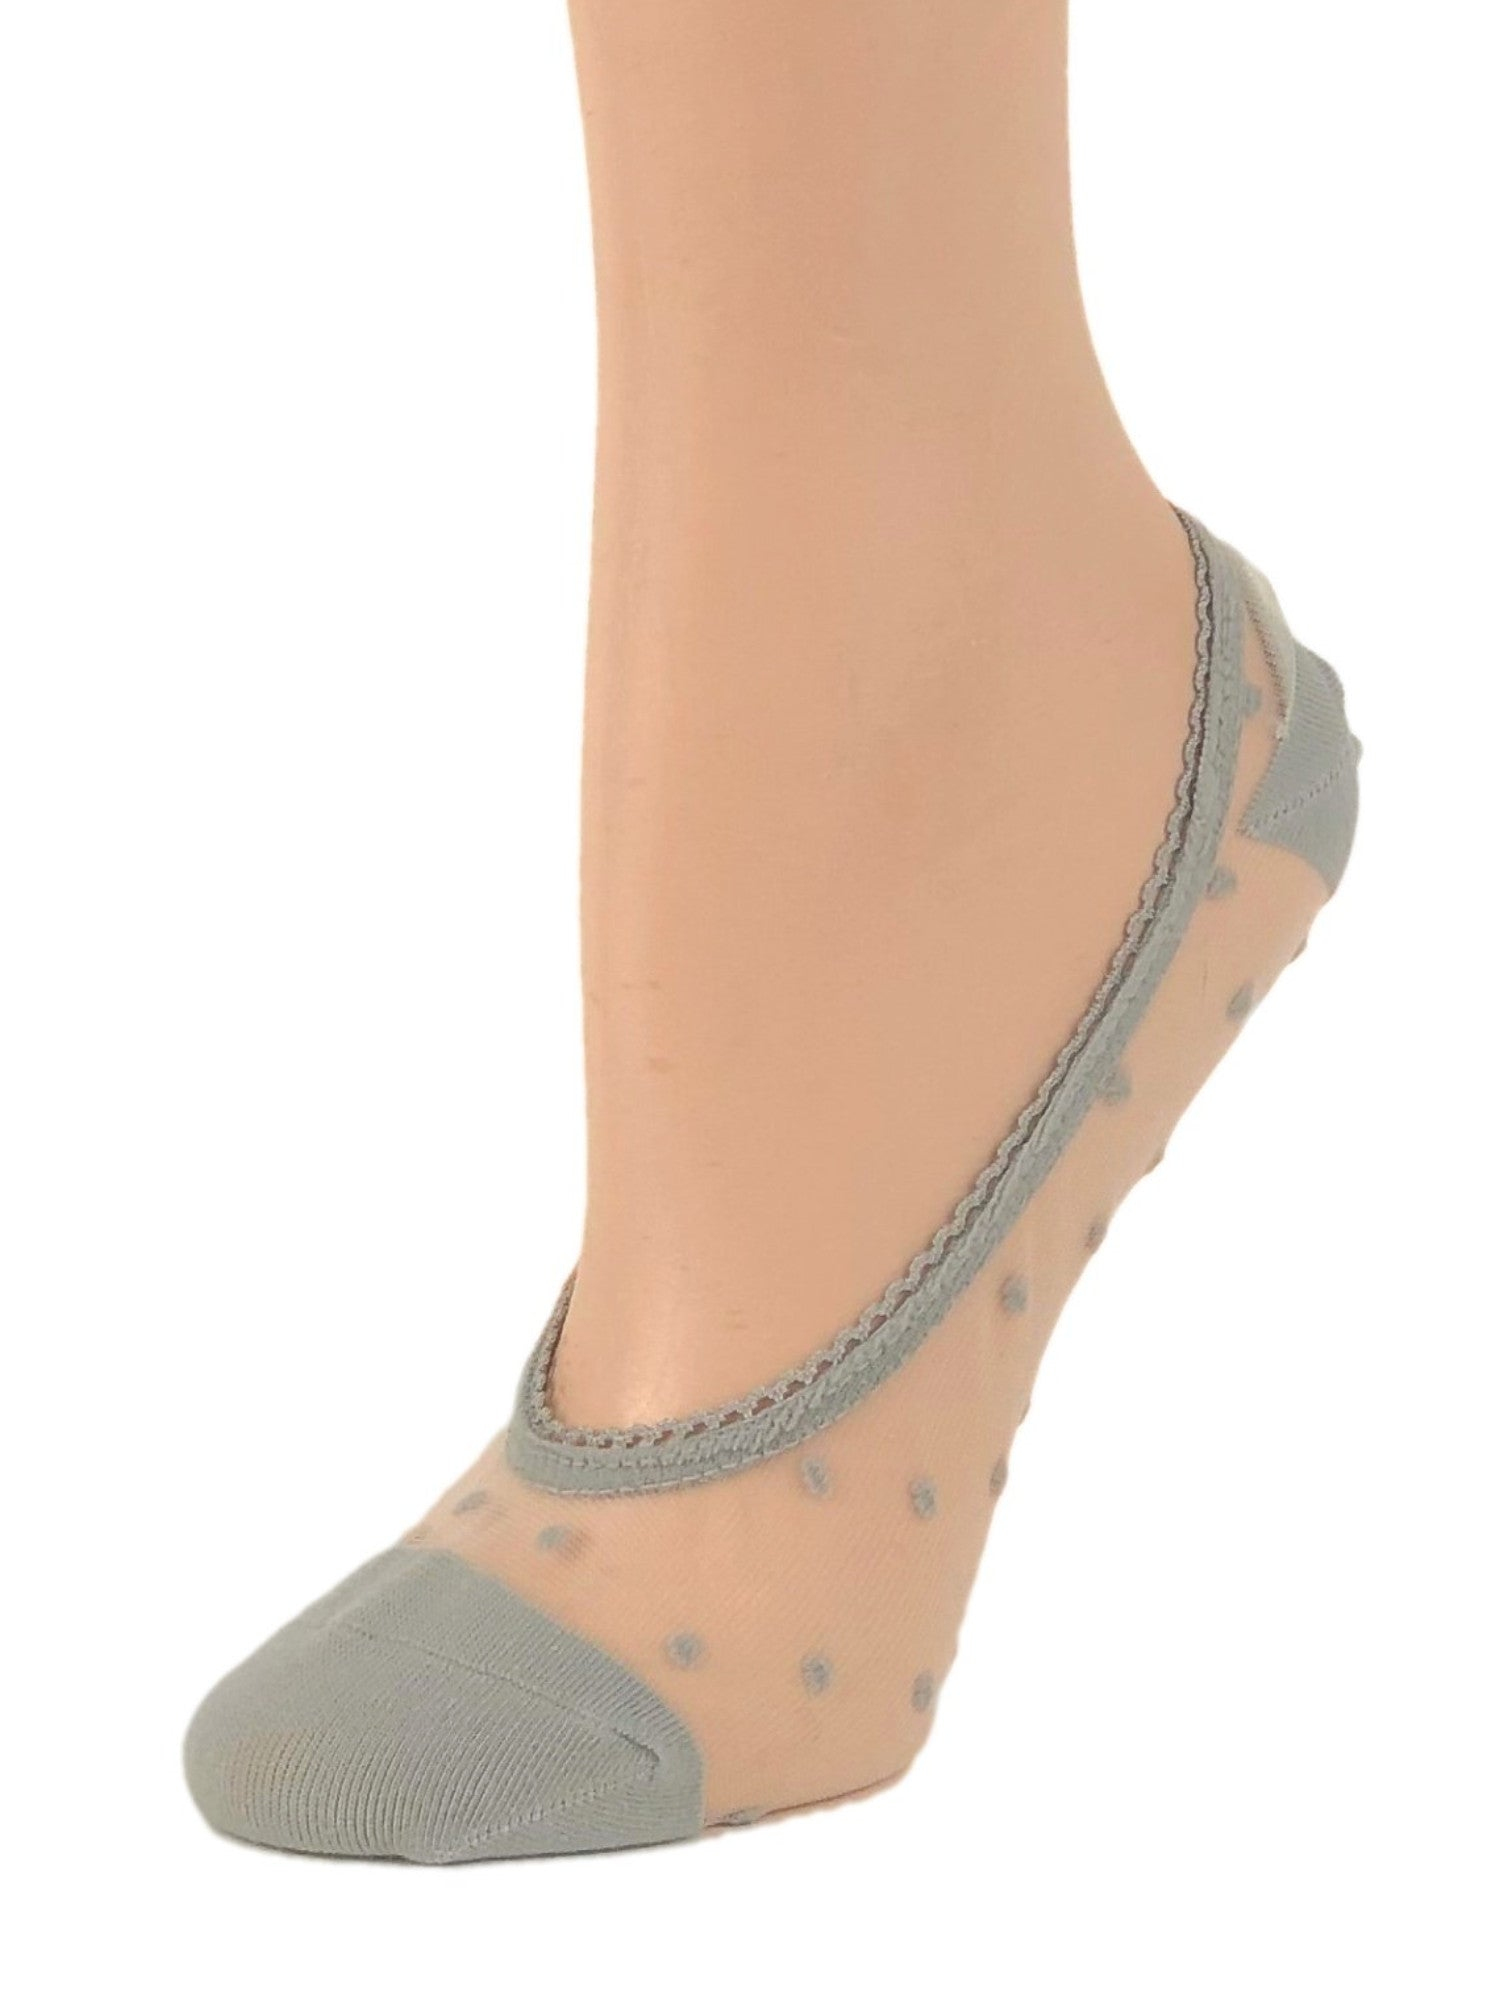 Dotted Grey Ankle Sheer Socks - Global Trendz Fashion®